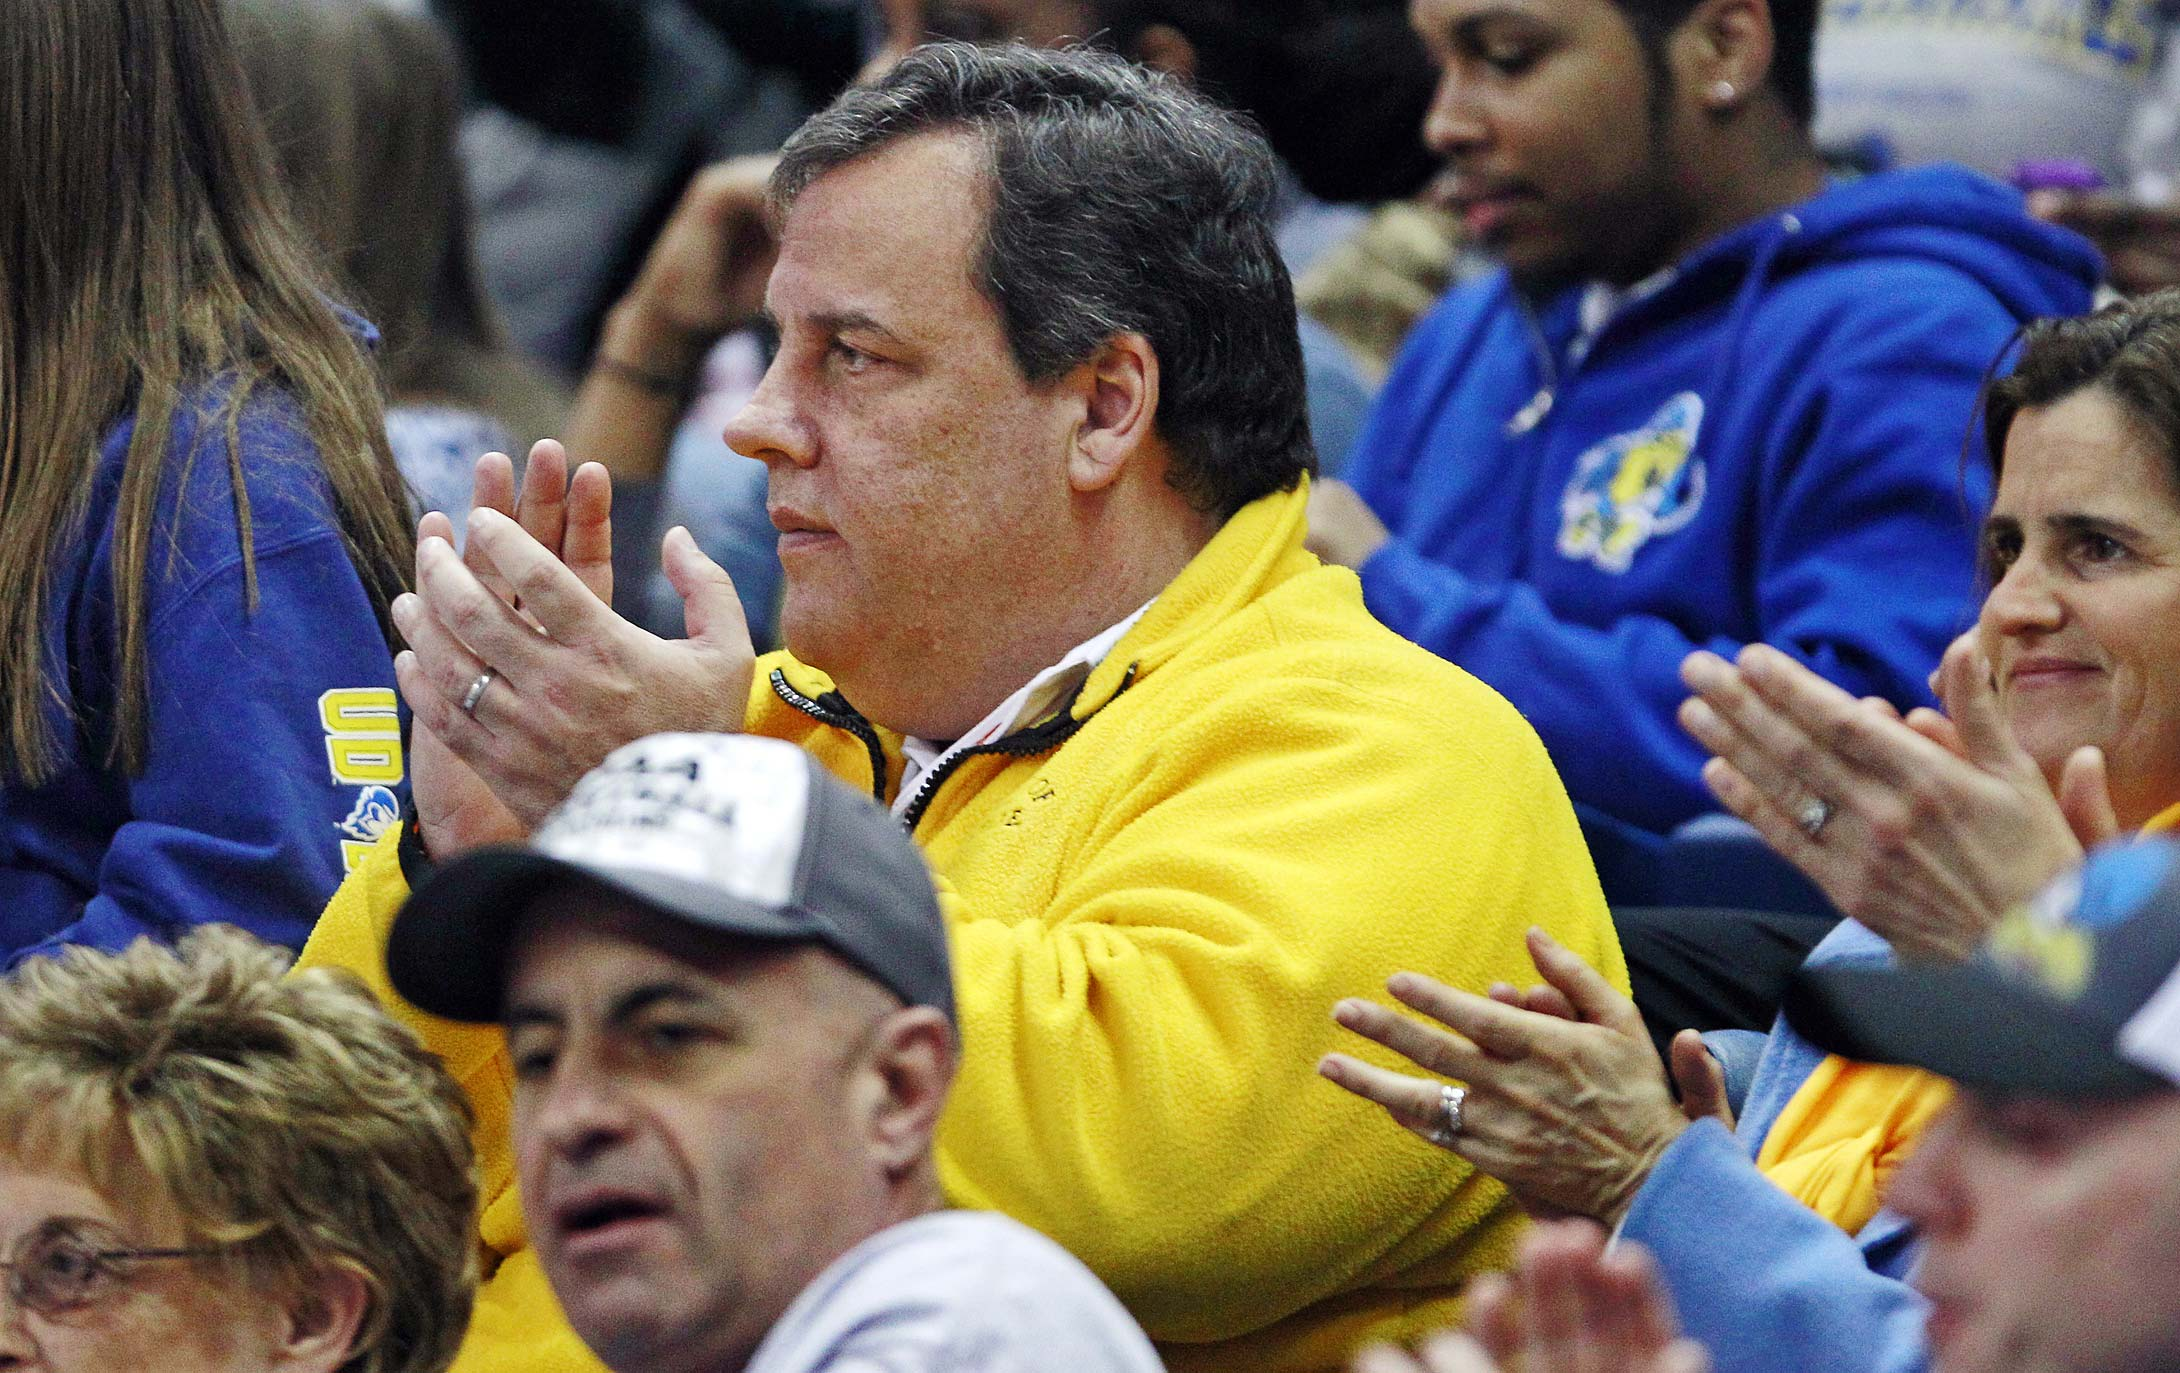 New Jersey Gov. Chris Christie at a 2013 regional semifinal between Delaware and Kentucky in Bridgeport, Conn.